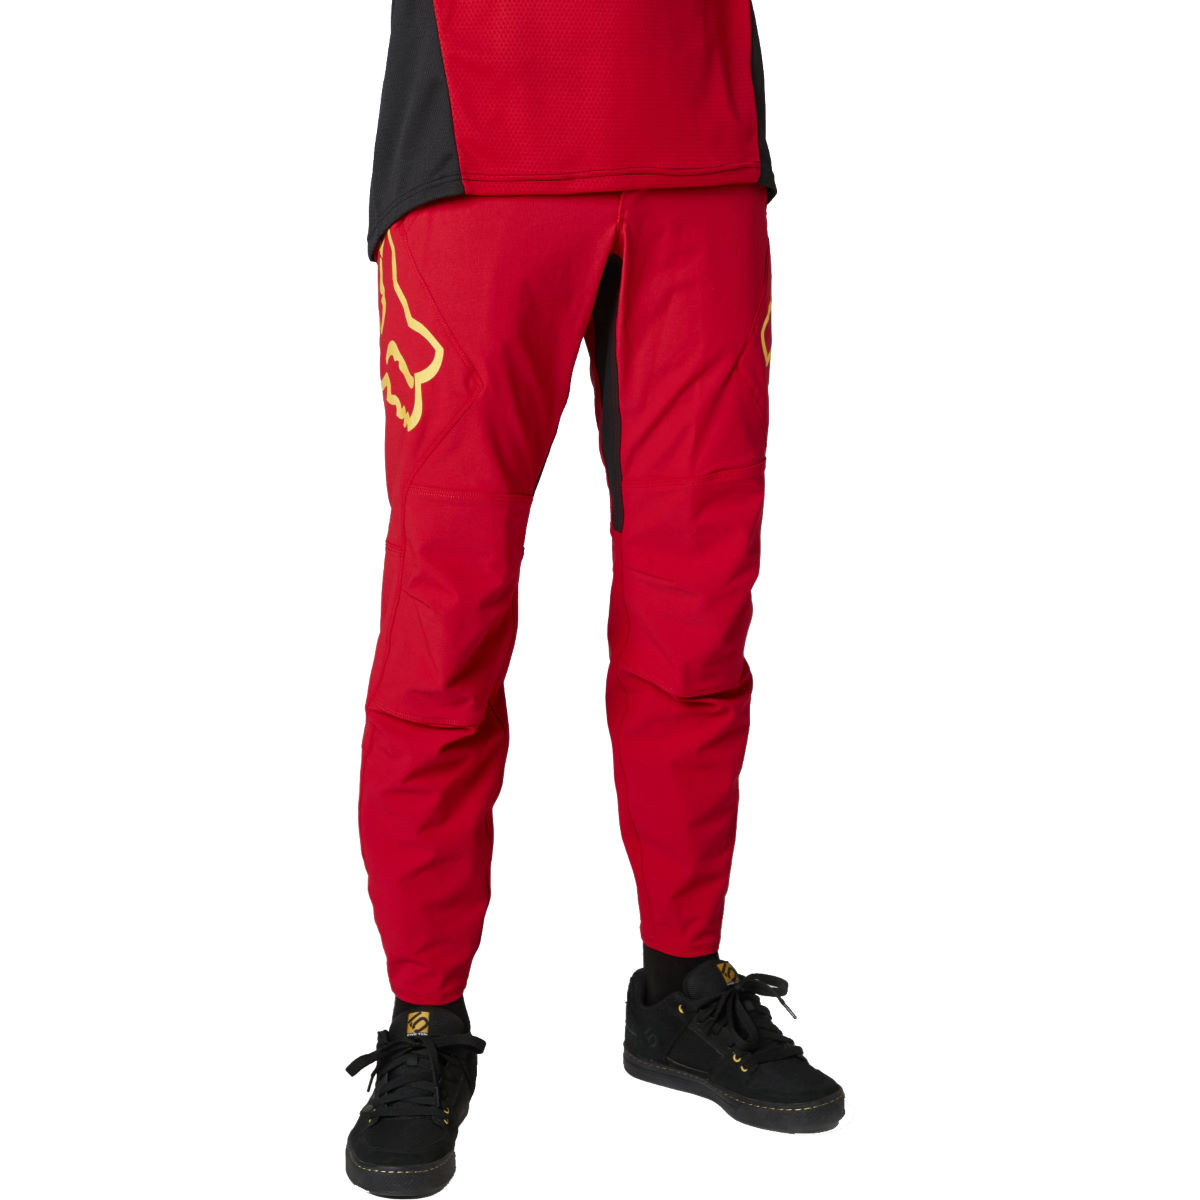 Fox Racing Defend Cycling Trousers Rs - 34 Chili  Trousers